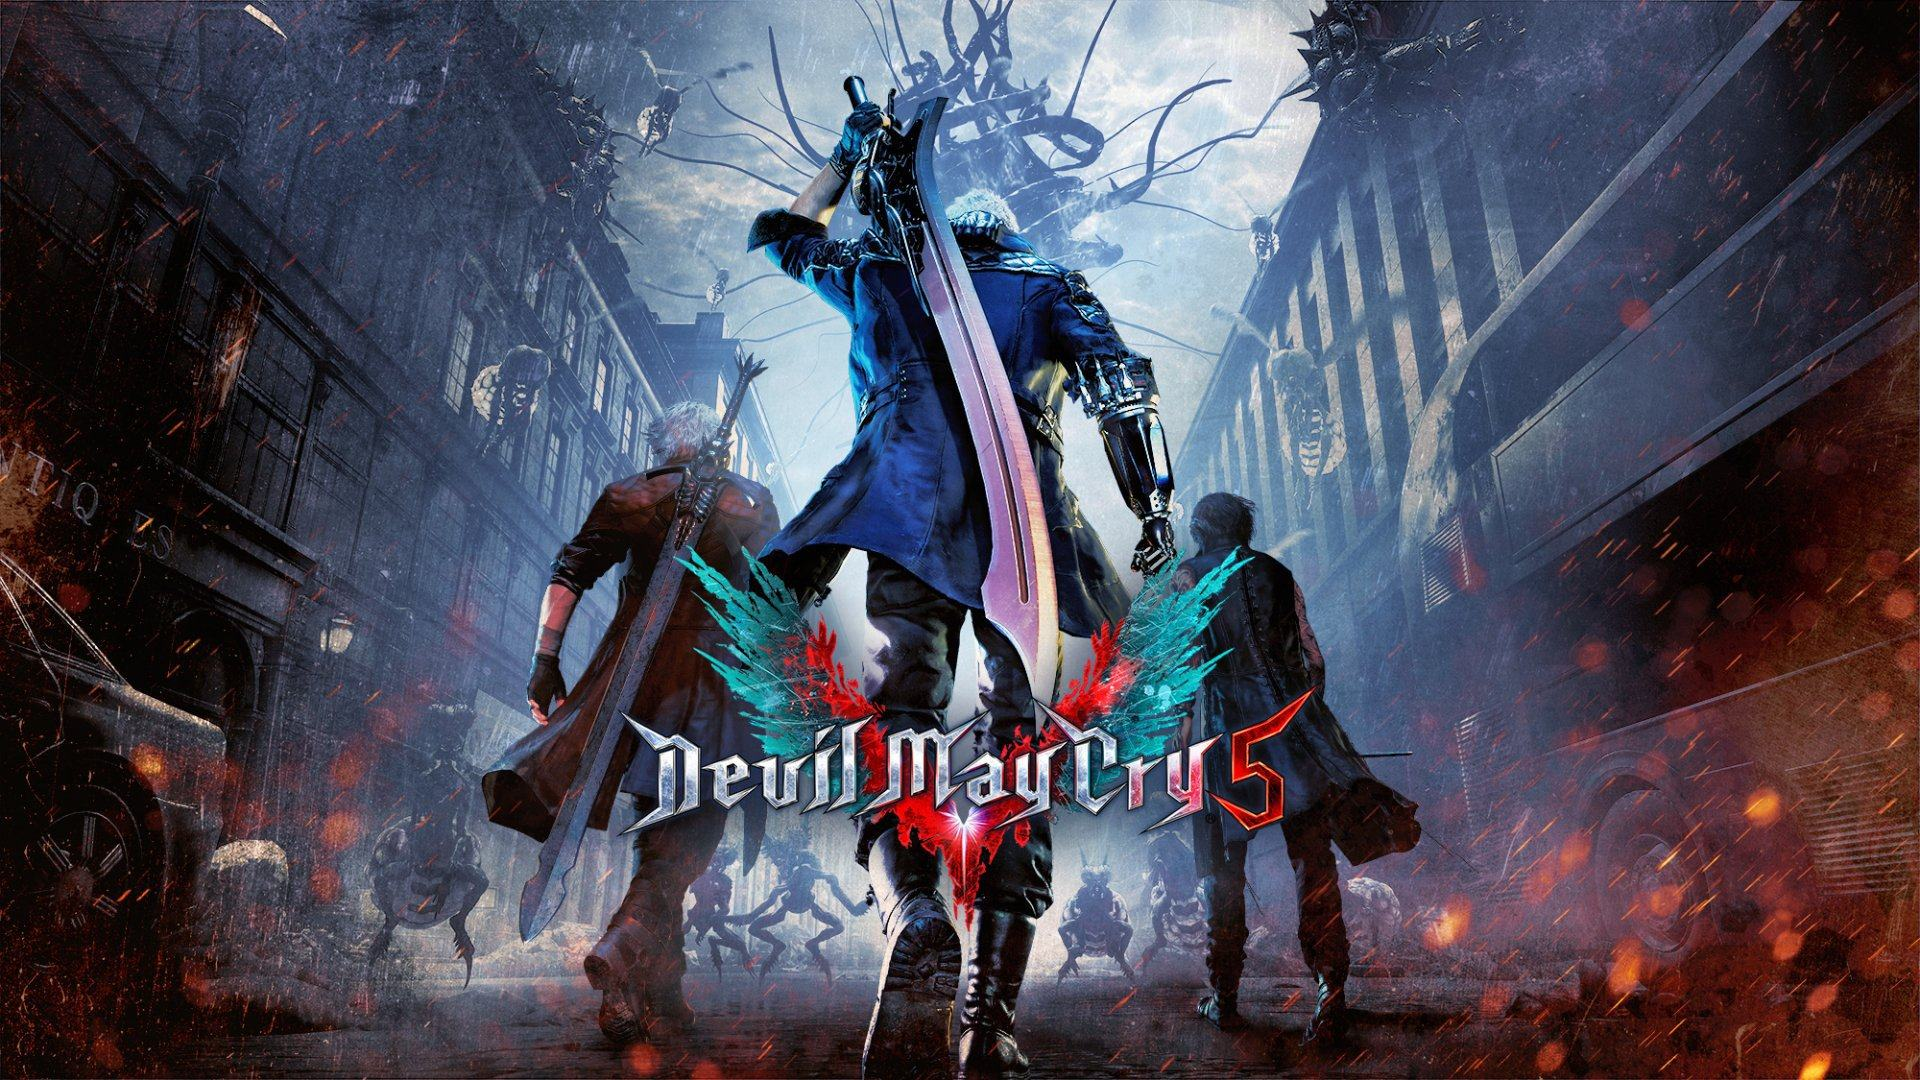 devil-may-cry-5-Cover-Art.jpg.optimal